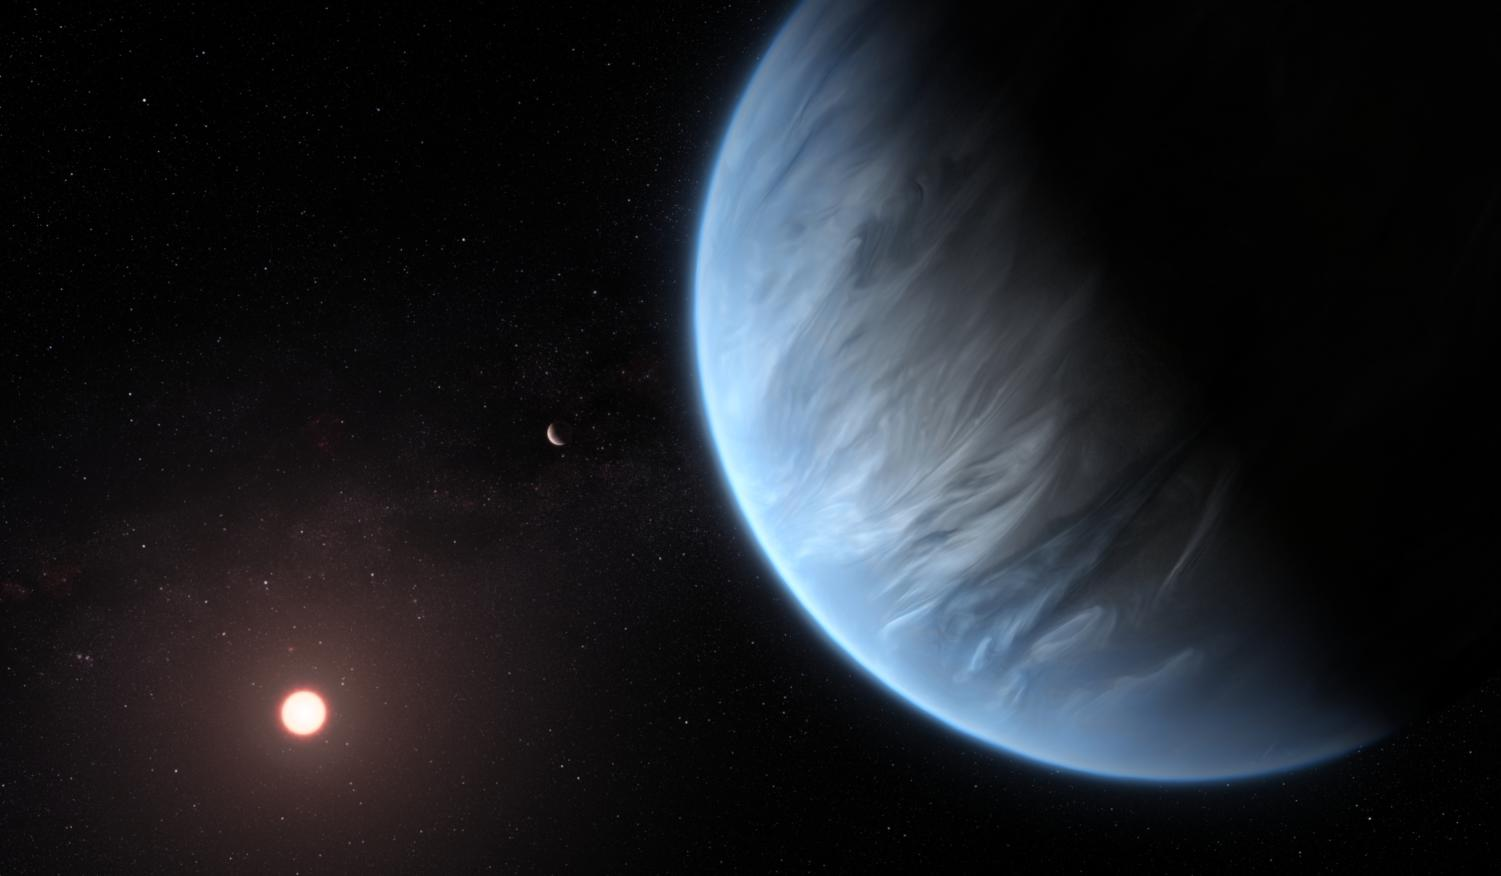 An Artist impression of what K2-18 looks like against the cold blackness of space: